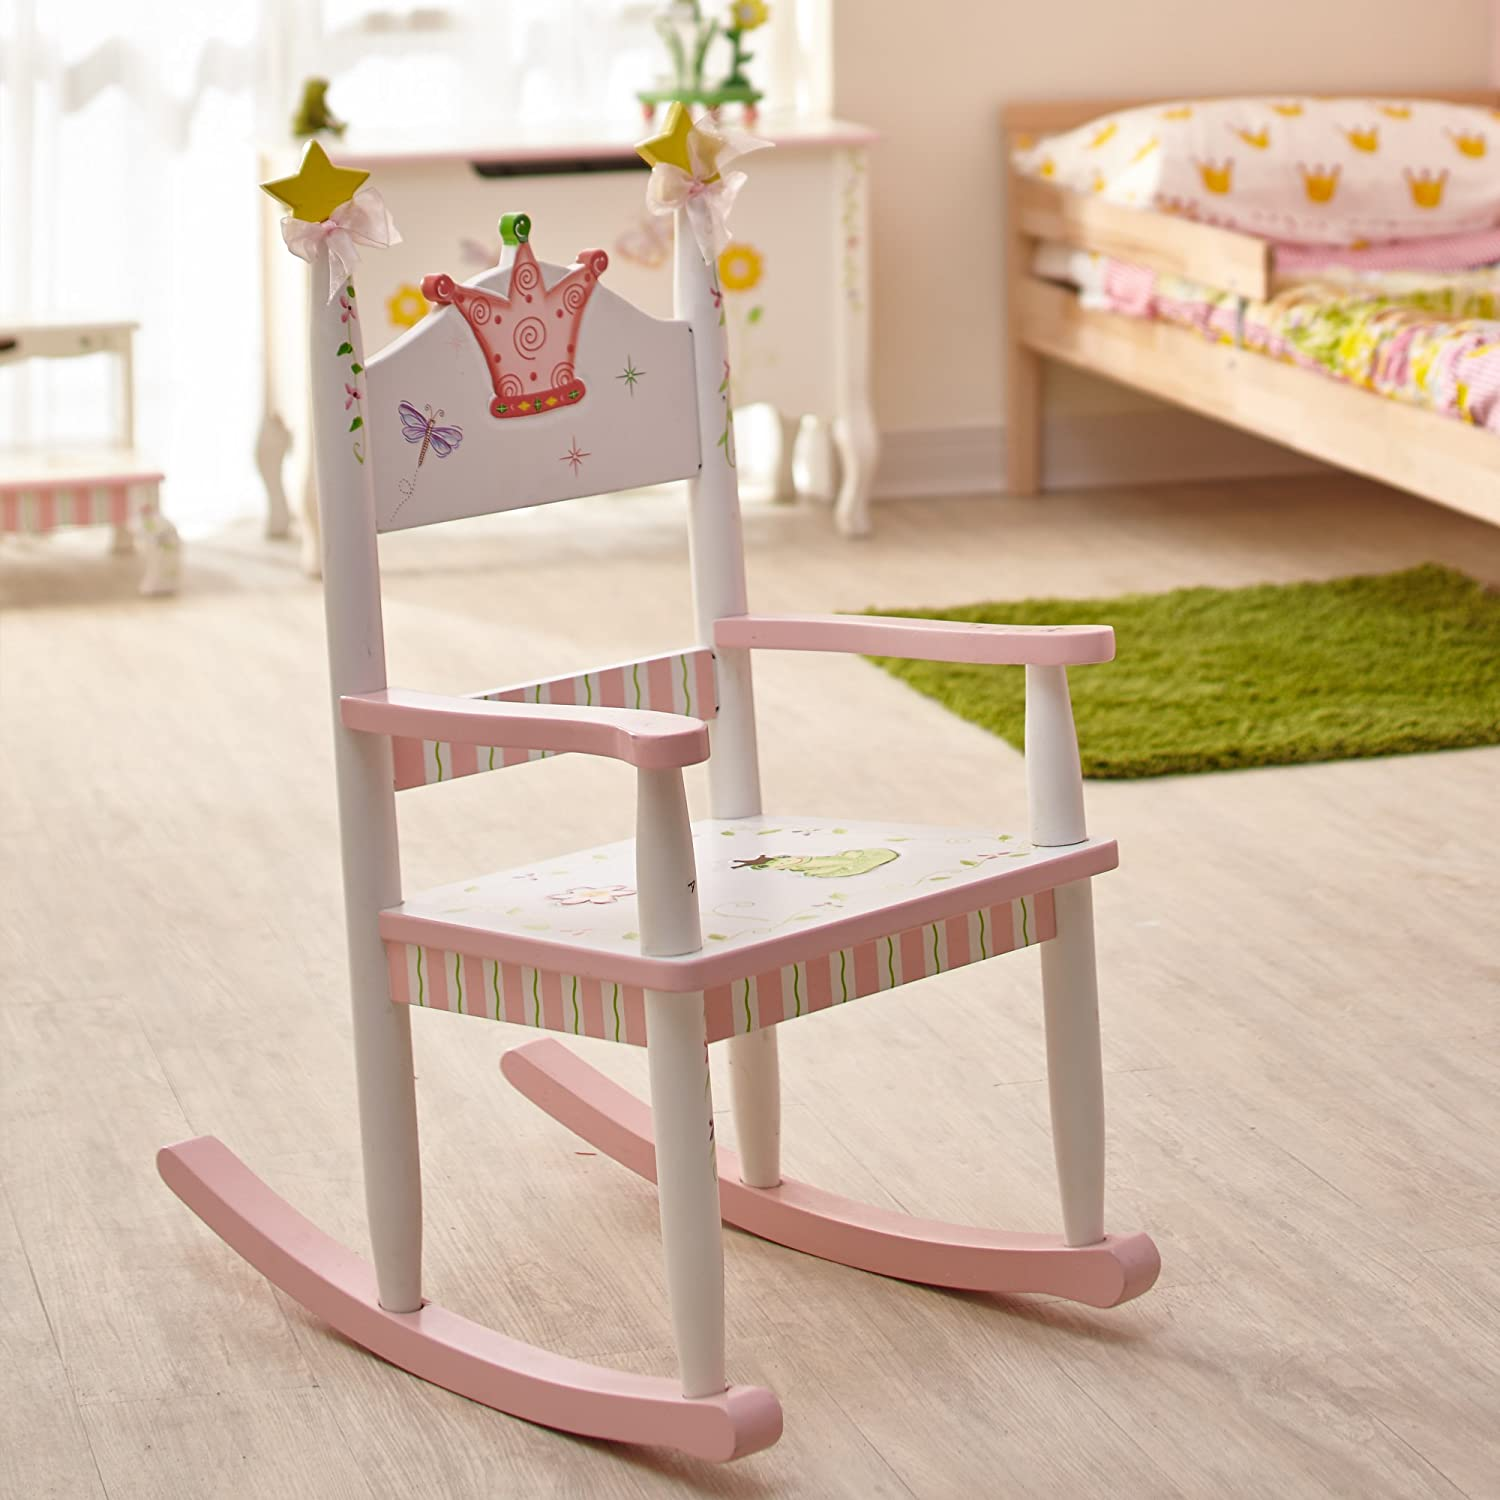 All products baby amp kids nursery furniture rocking chairs - Fantasy Fields Princess Frog Themed Kids Wooden Rocking Chair Hand Crafted Hand Painted Details Child Friendly Water Based Paint Amazon Co Uk